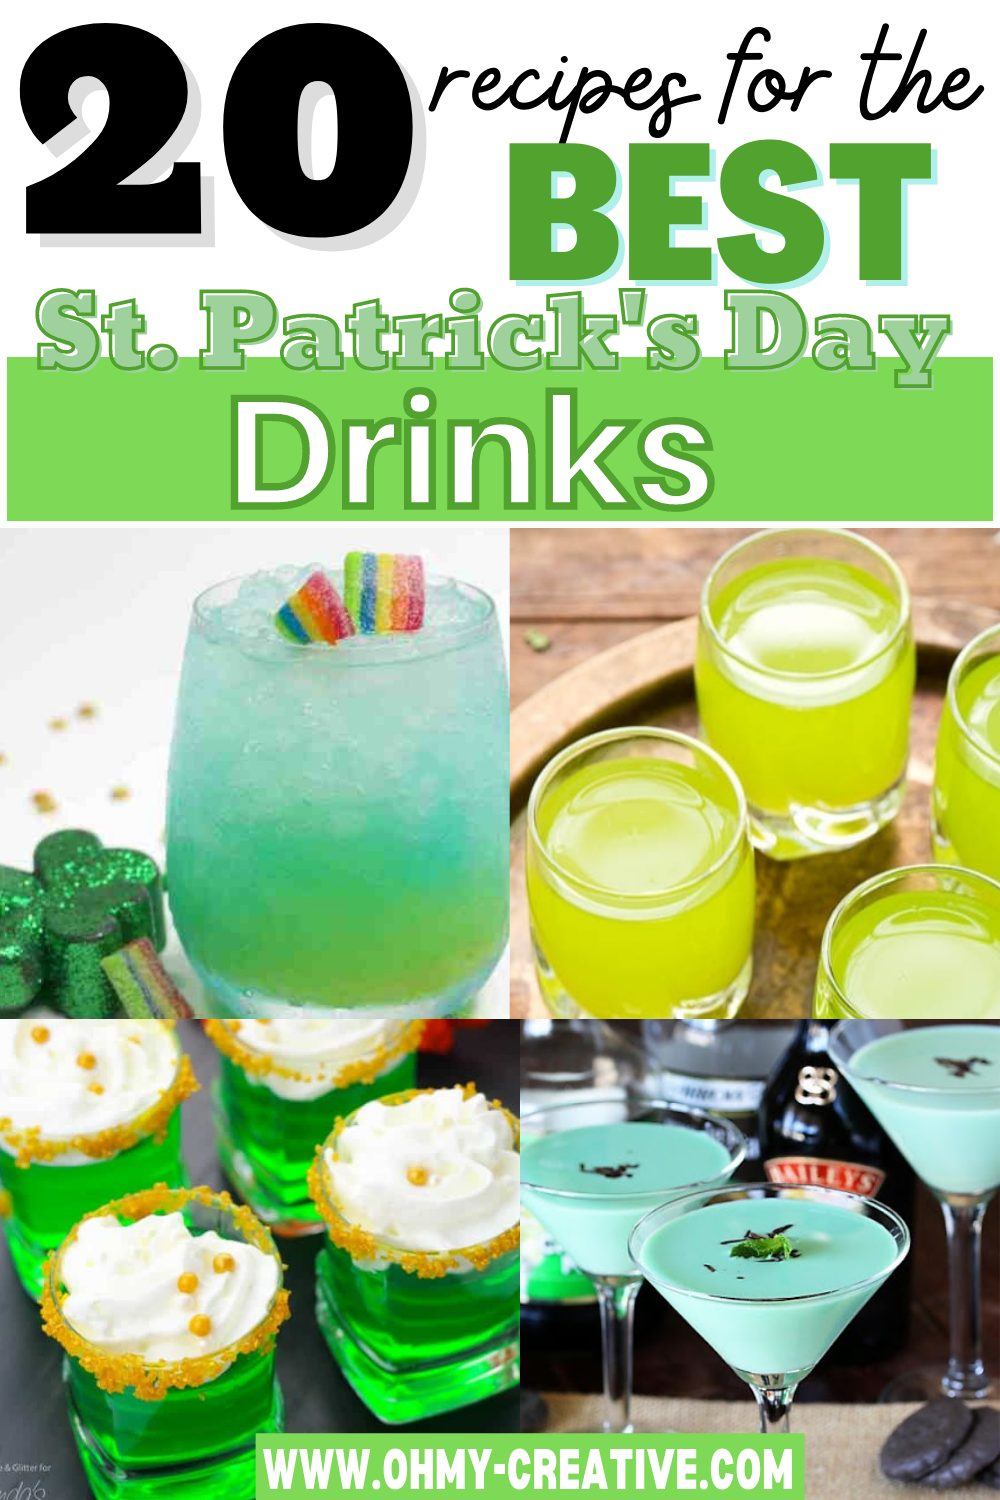 The Best St. Patrick's Day Drinks   Green Cocktails